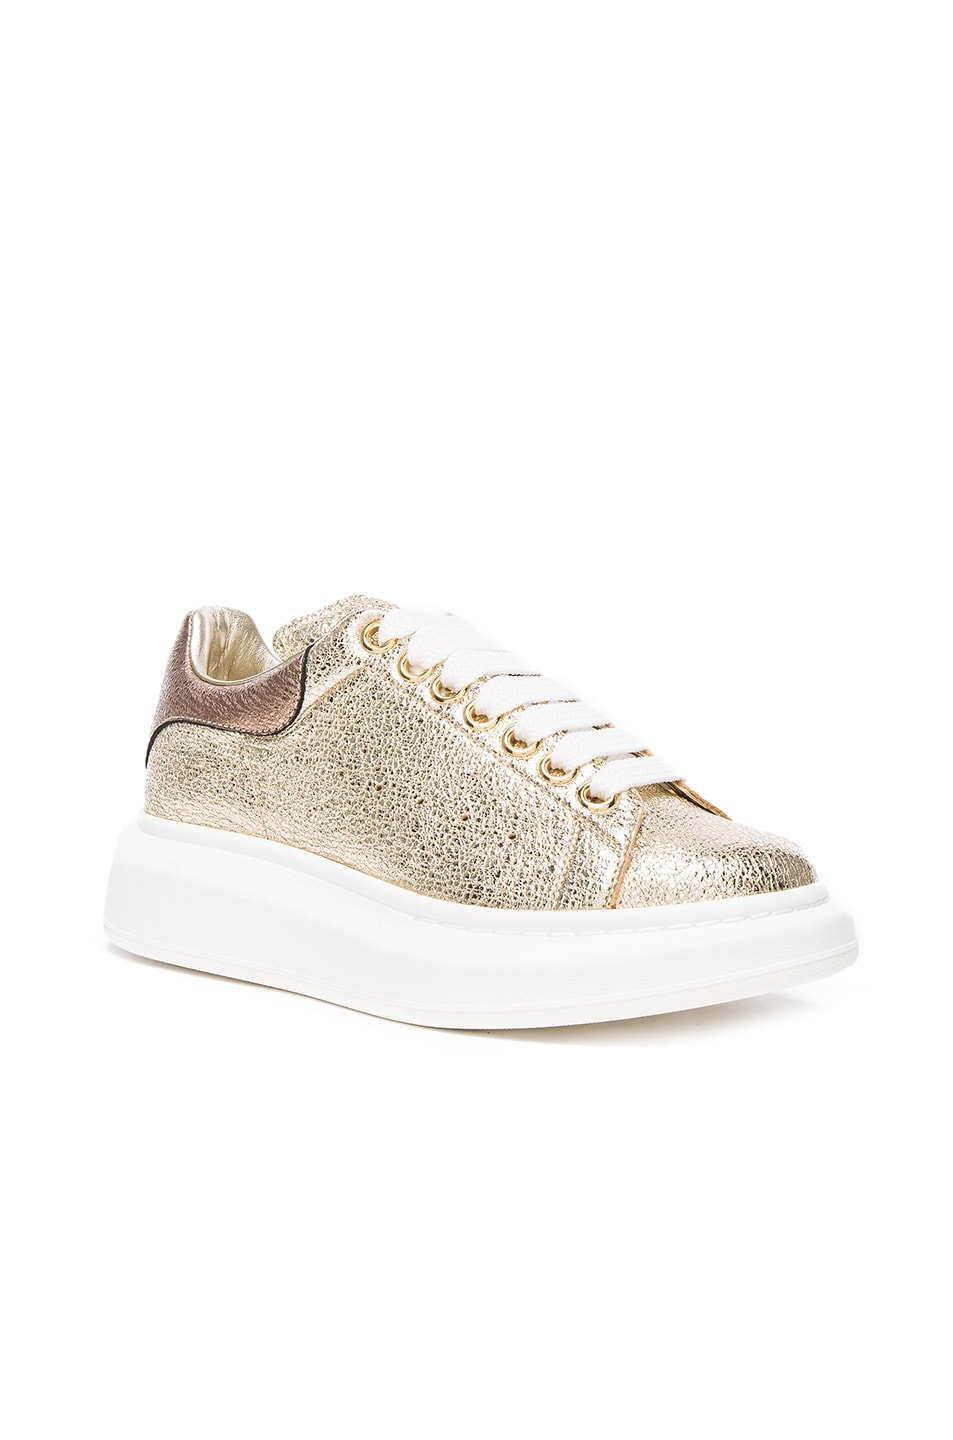 Image 2 of Alexander McQueen Leather Platform Sneakers in Gold & Boudoir